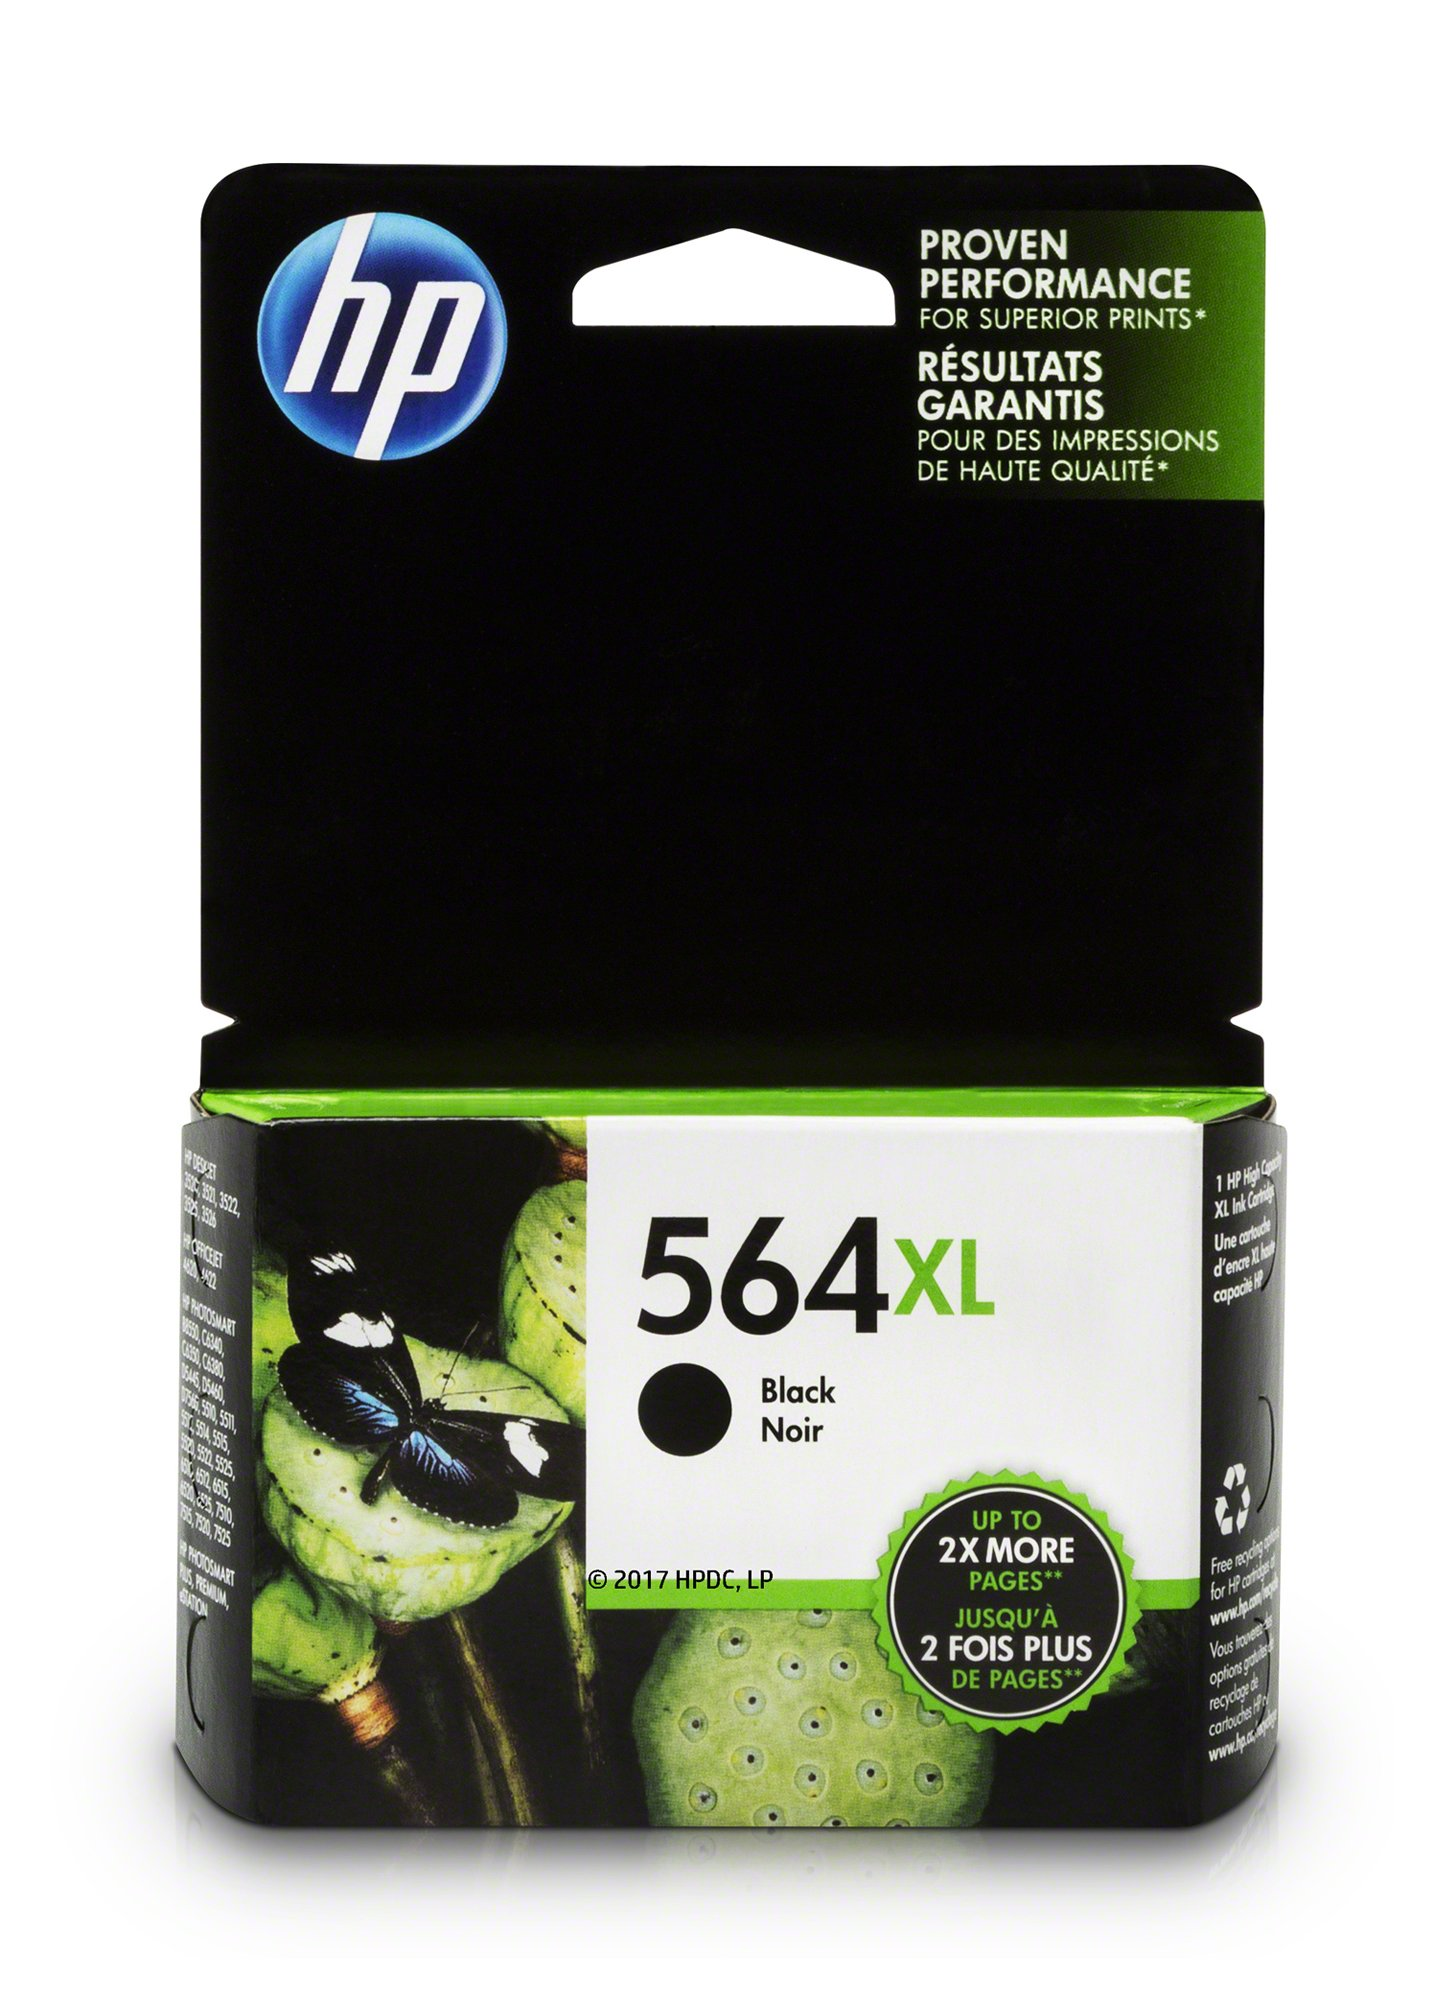 HP 564XL Black Ink Cartridge (CN684WN) for HP Deskjet 3520 3521 3522 3526 HP Officejet 4610 4620 4622 HP Photosmart: 5510 5512 5514 5515 5520 5525 6510 6512 6515 6520 6525 7510 7515 7520 7525 B8550 C6340 C6350 D7560 C510 B209 B210 C309 C310 C410 C510 by HP